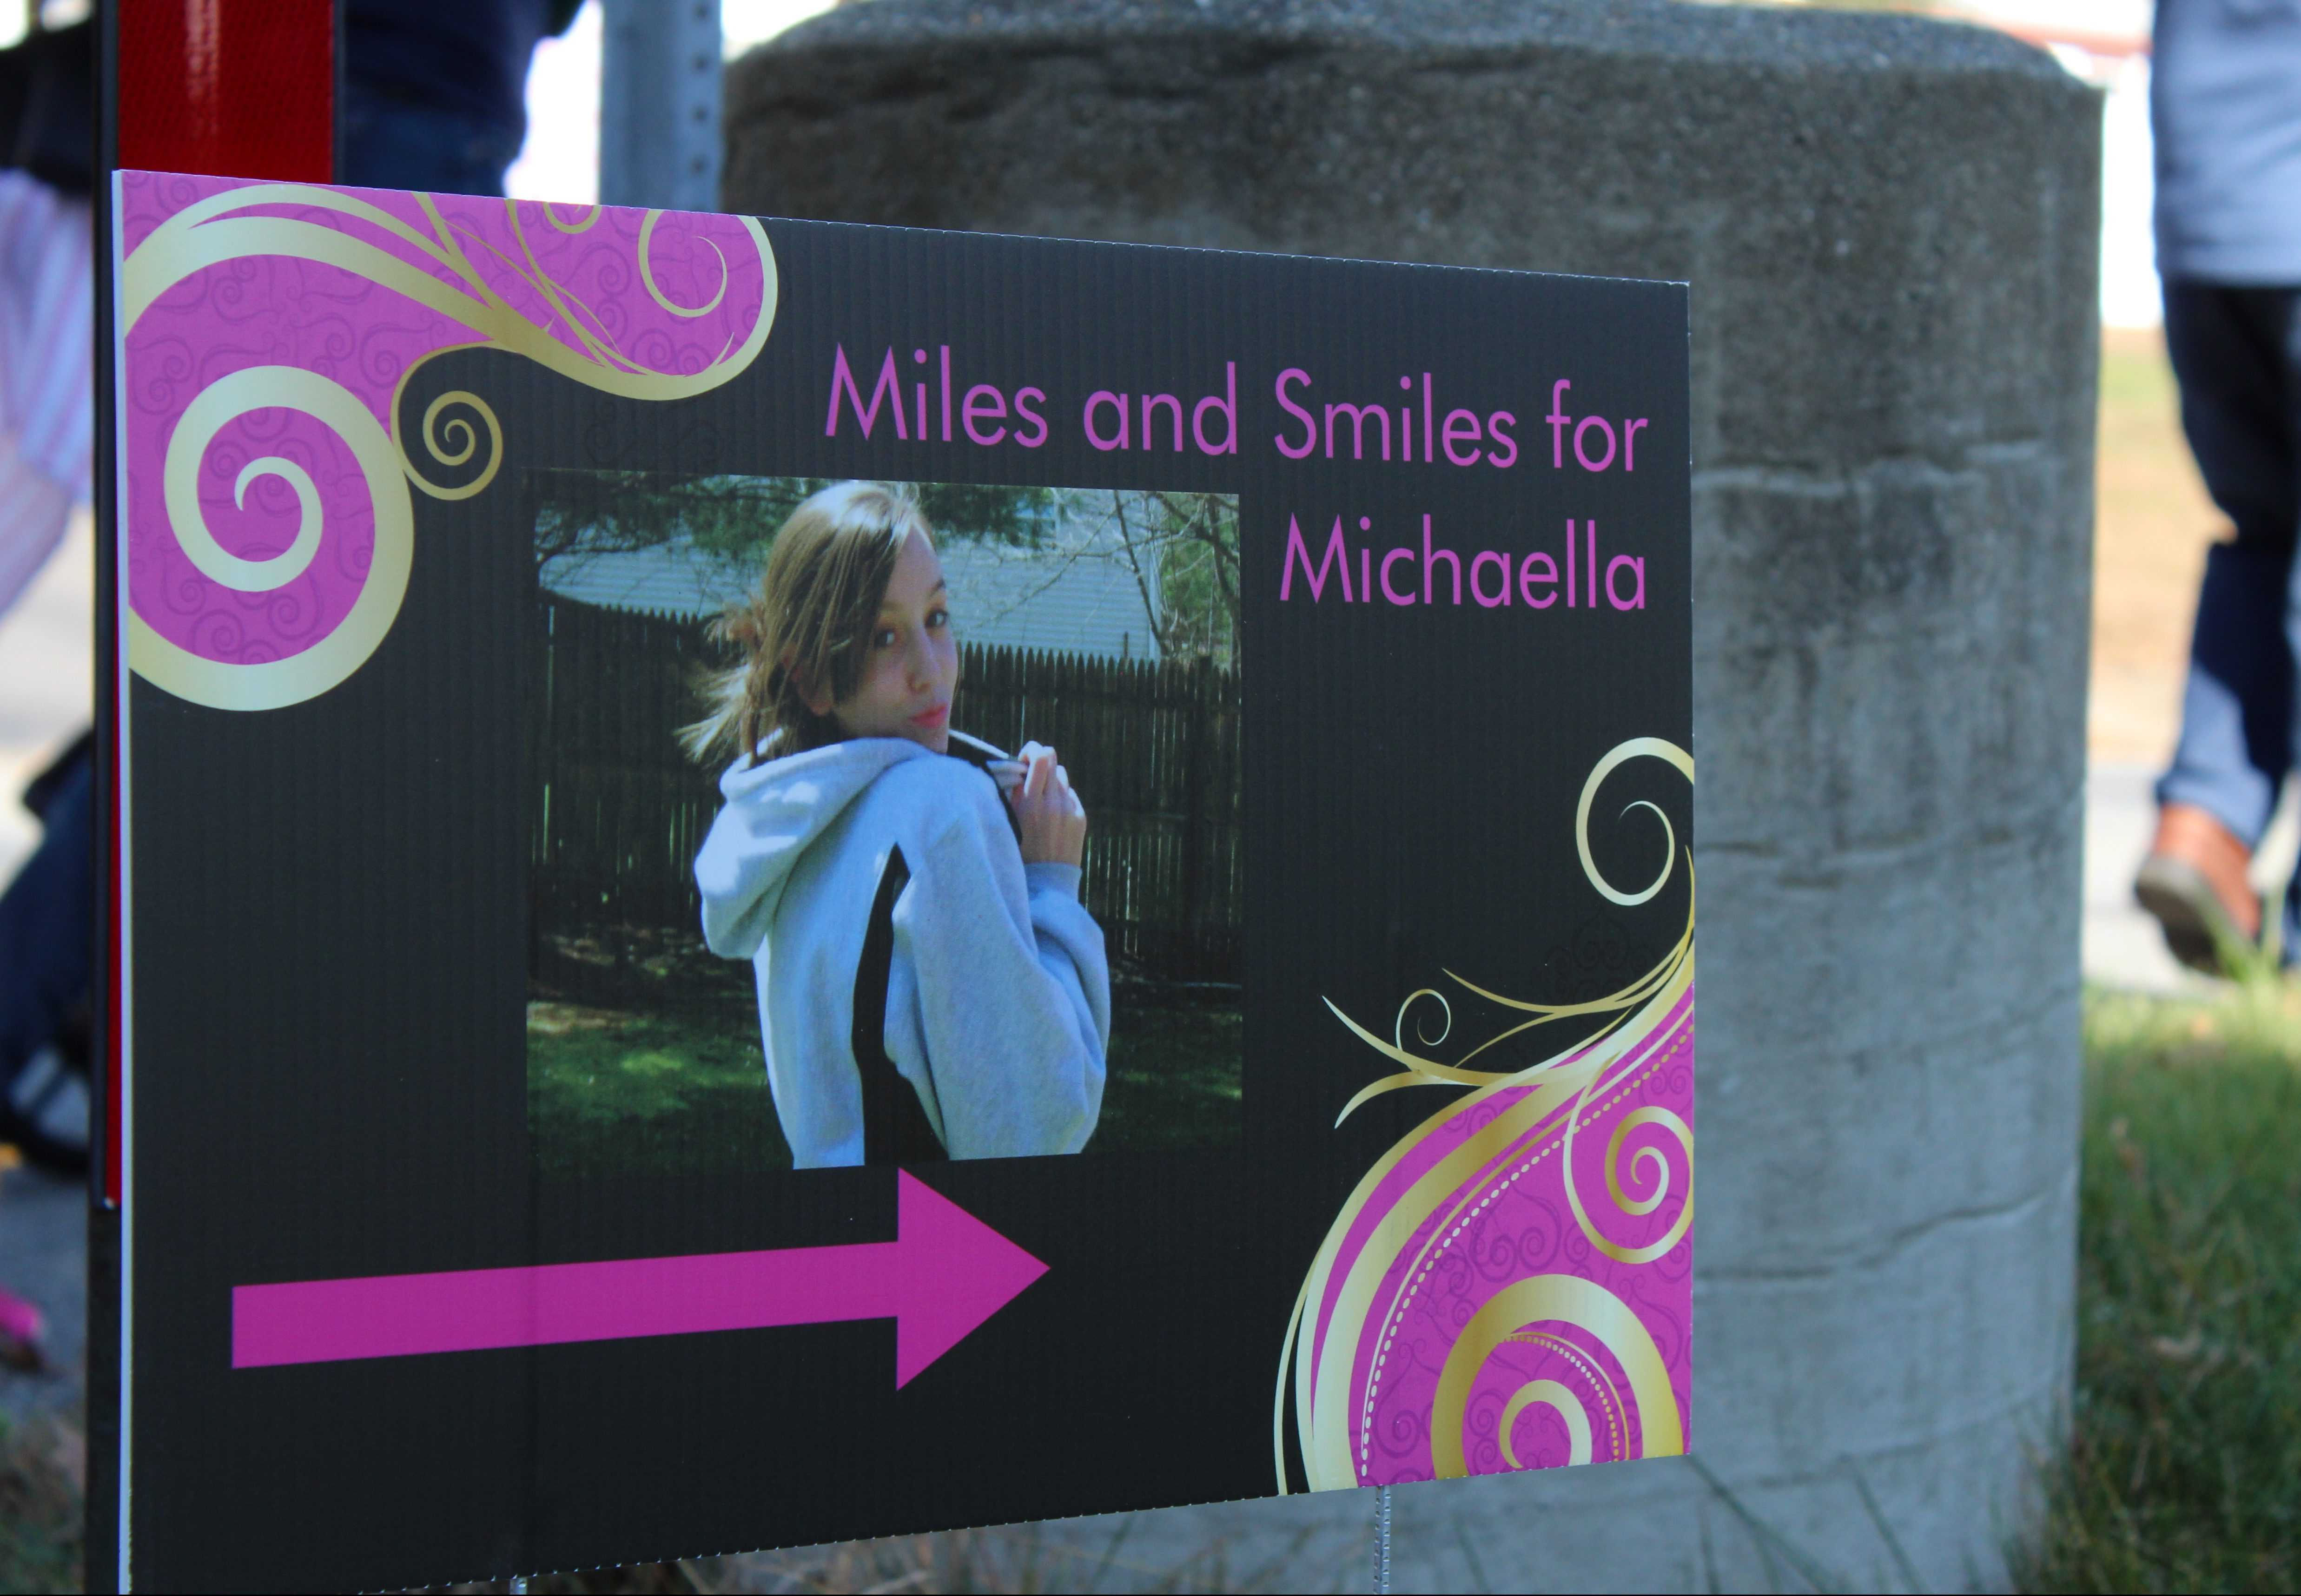 Miles and Smiles for Michaella Walk 2017